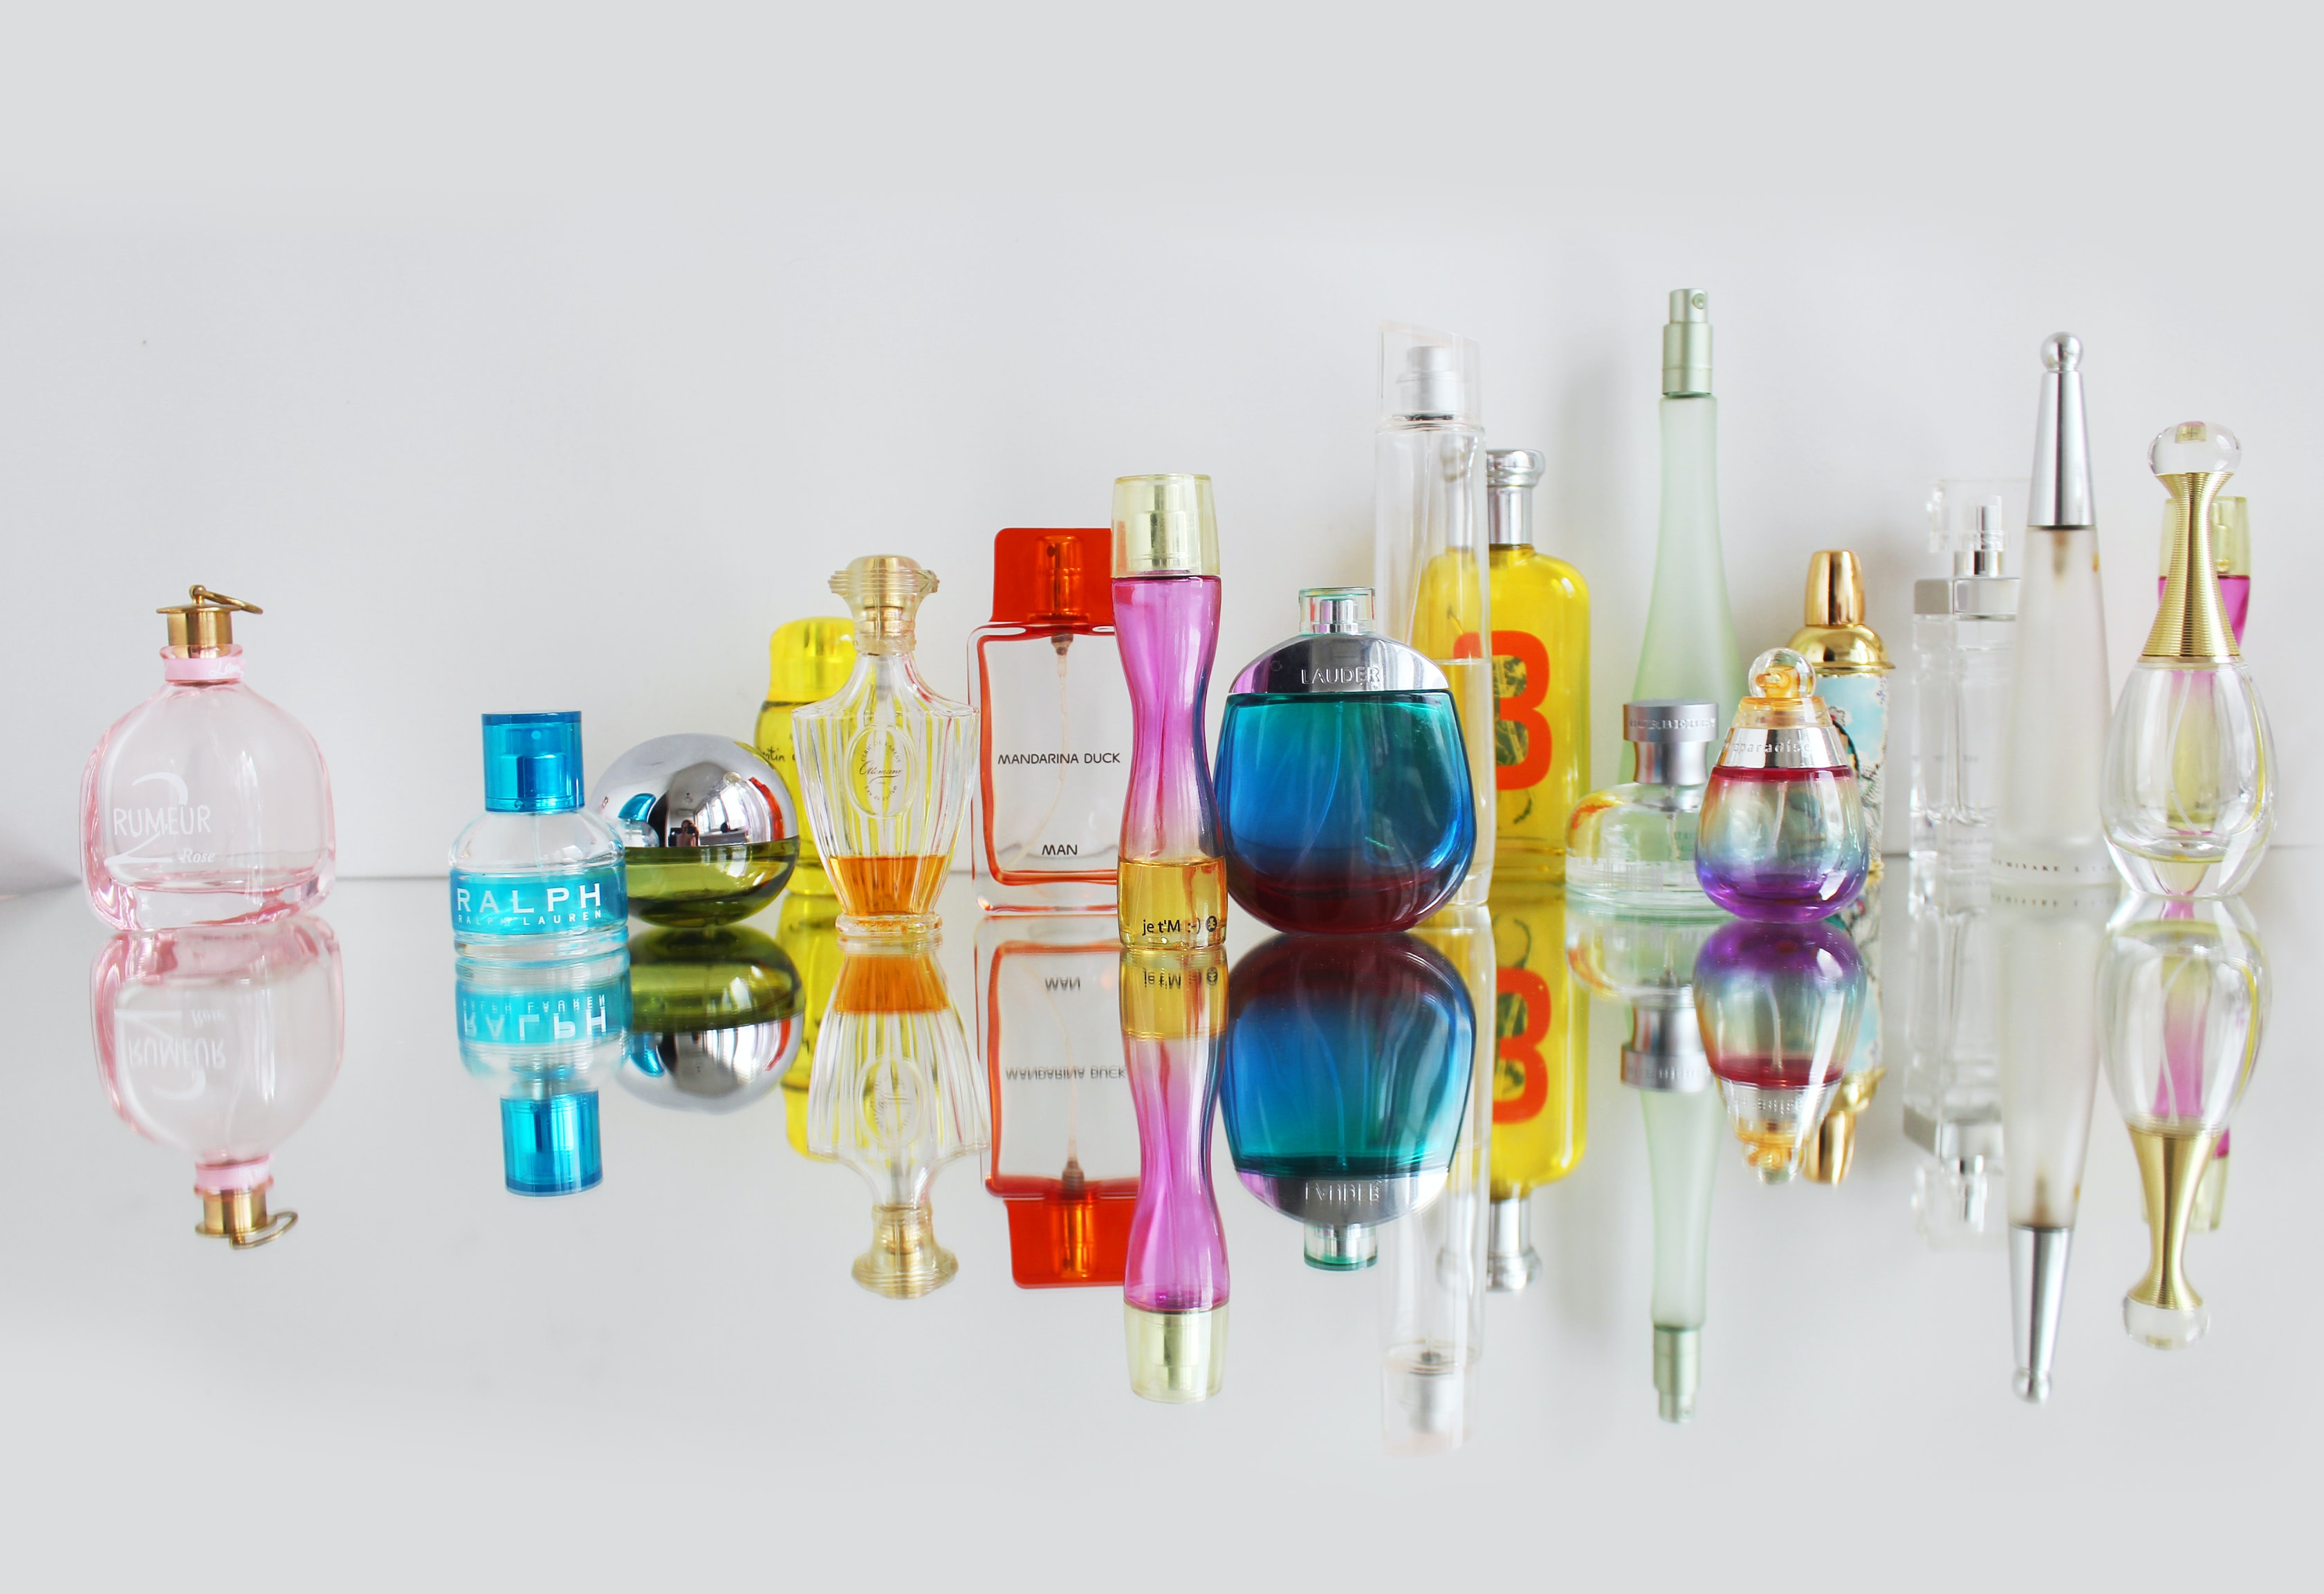 the perfume and fragrance market